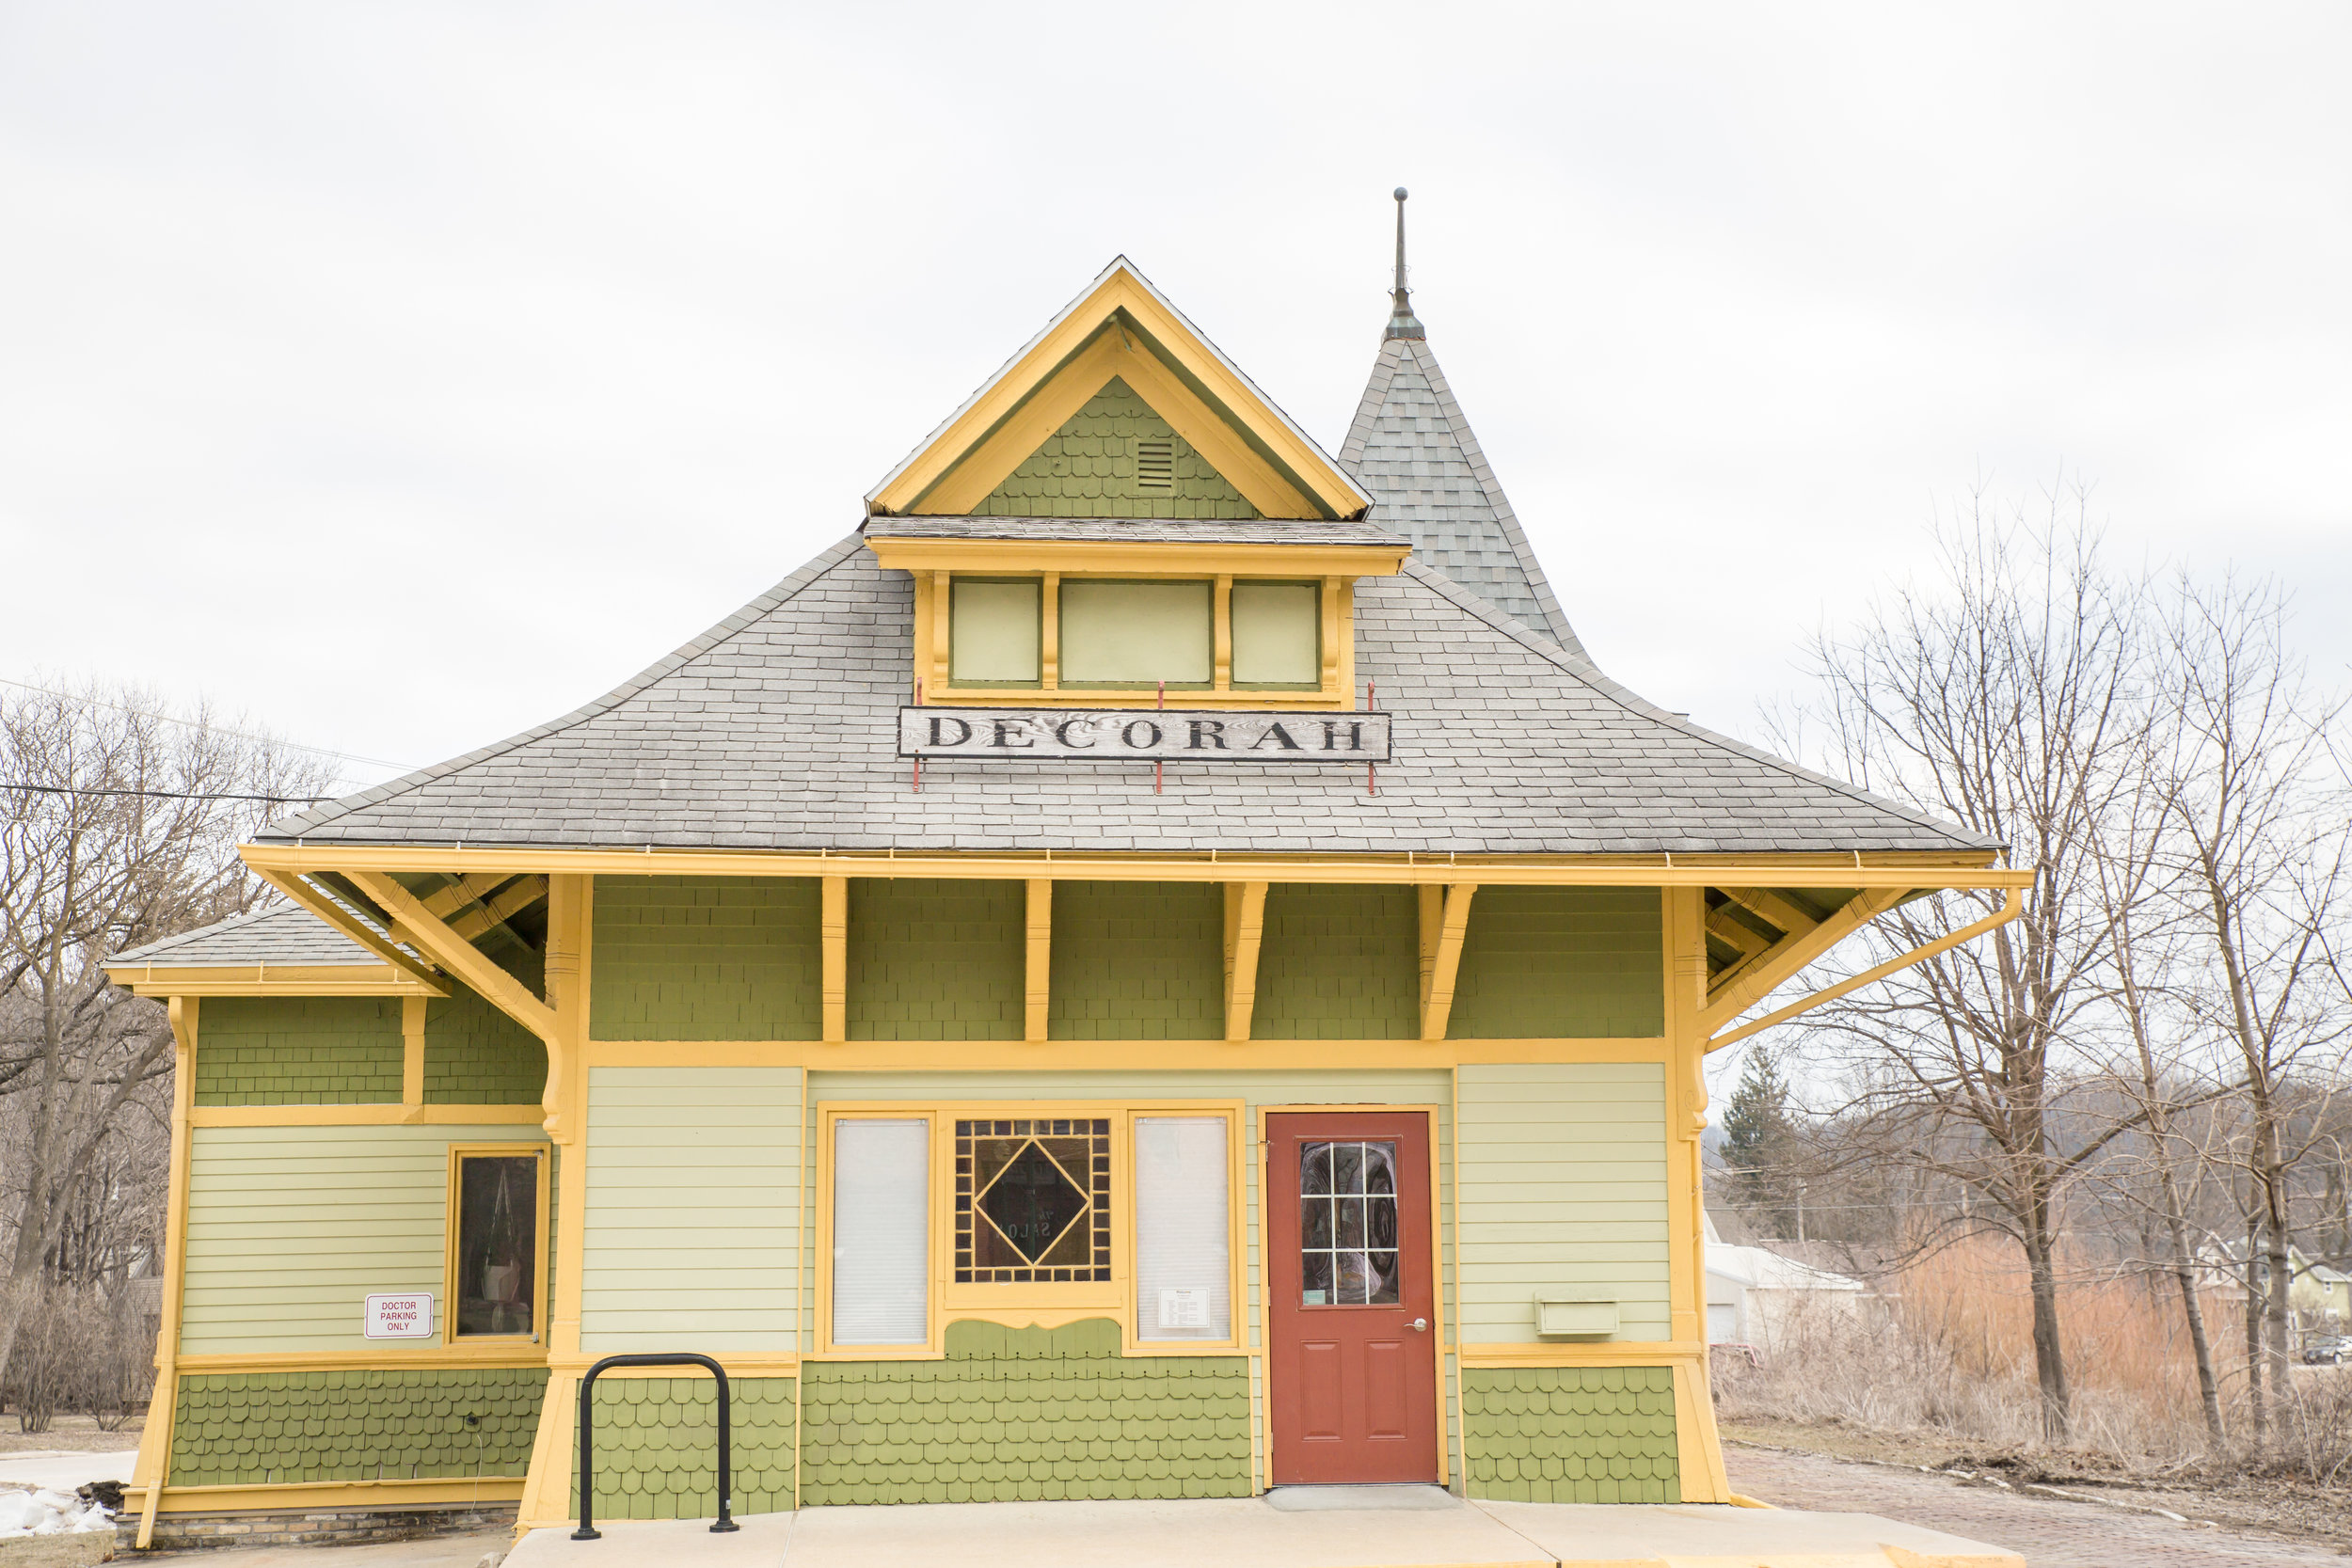 historic train station turned doctor's office.